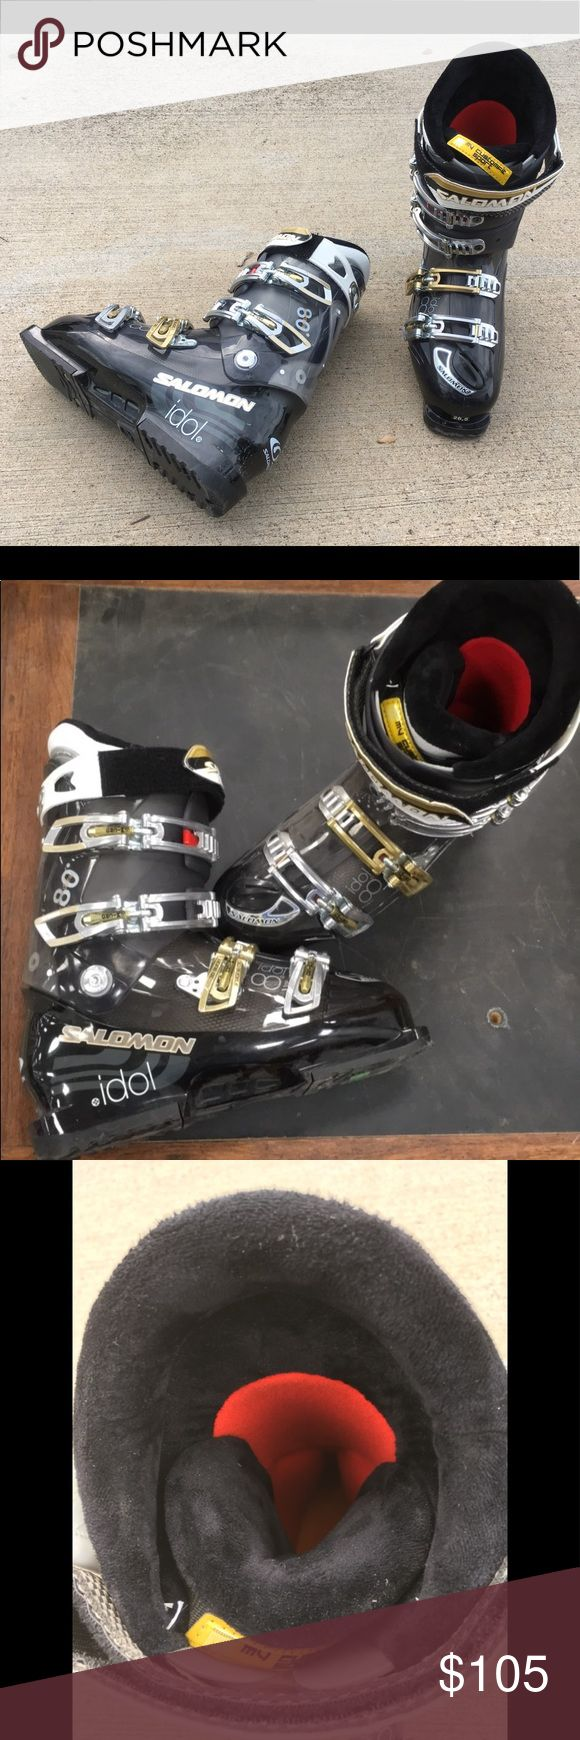 Salomon Idol 8 snow ski boots size 9.5 Like brand new condition with very few minor scuffs. Weight is 10 lbs so you'll need include shipping. Salomon Shoes Winter & Rain Boots